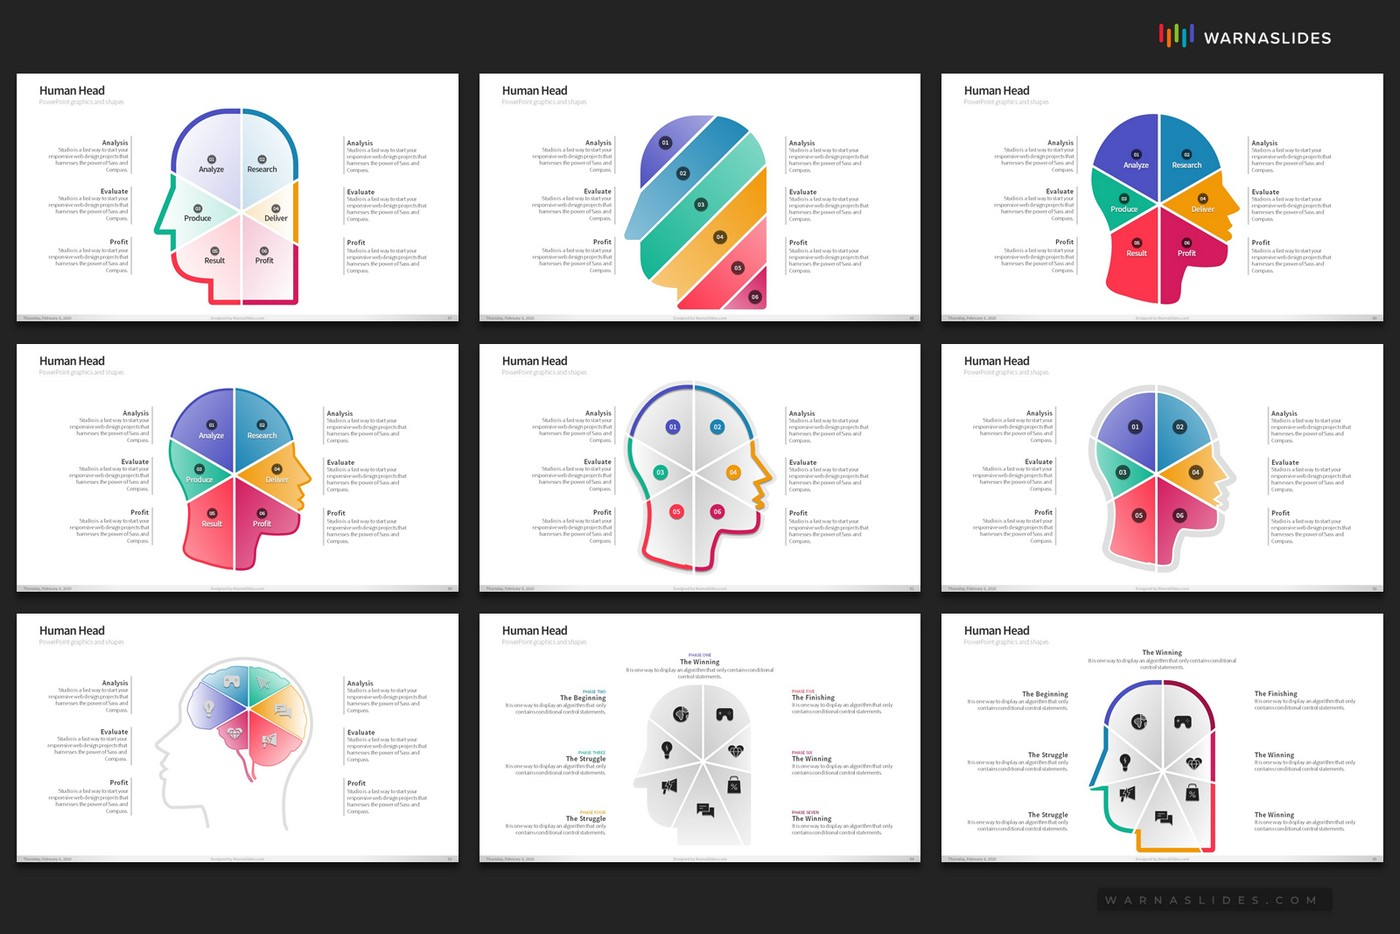 Human-Head-Ideas-Brainstorm-PowerPoint-Template-for-Business-Pitch-Deck-Professional-Creative-PowerPoint-Icons-018